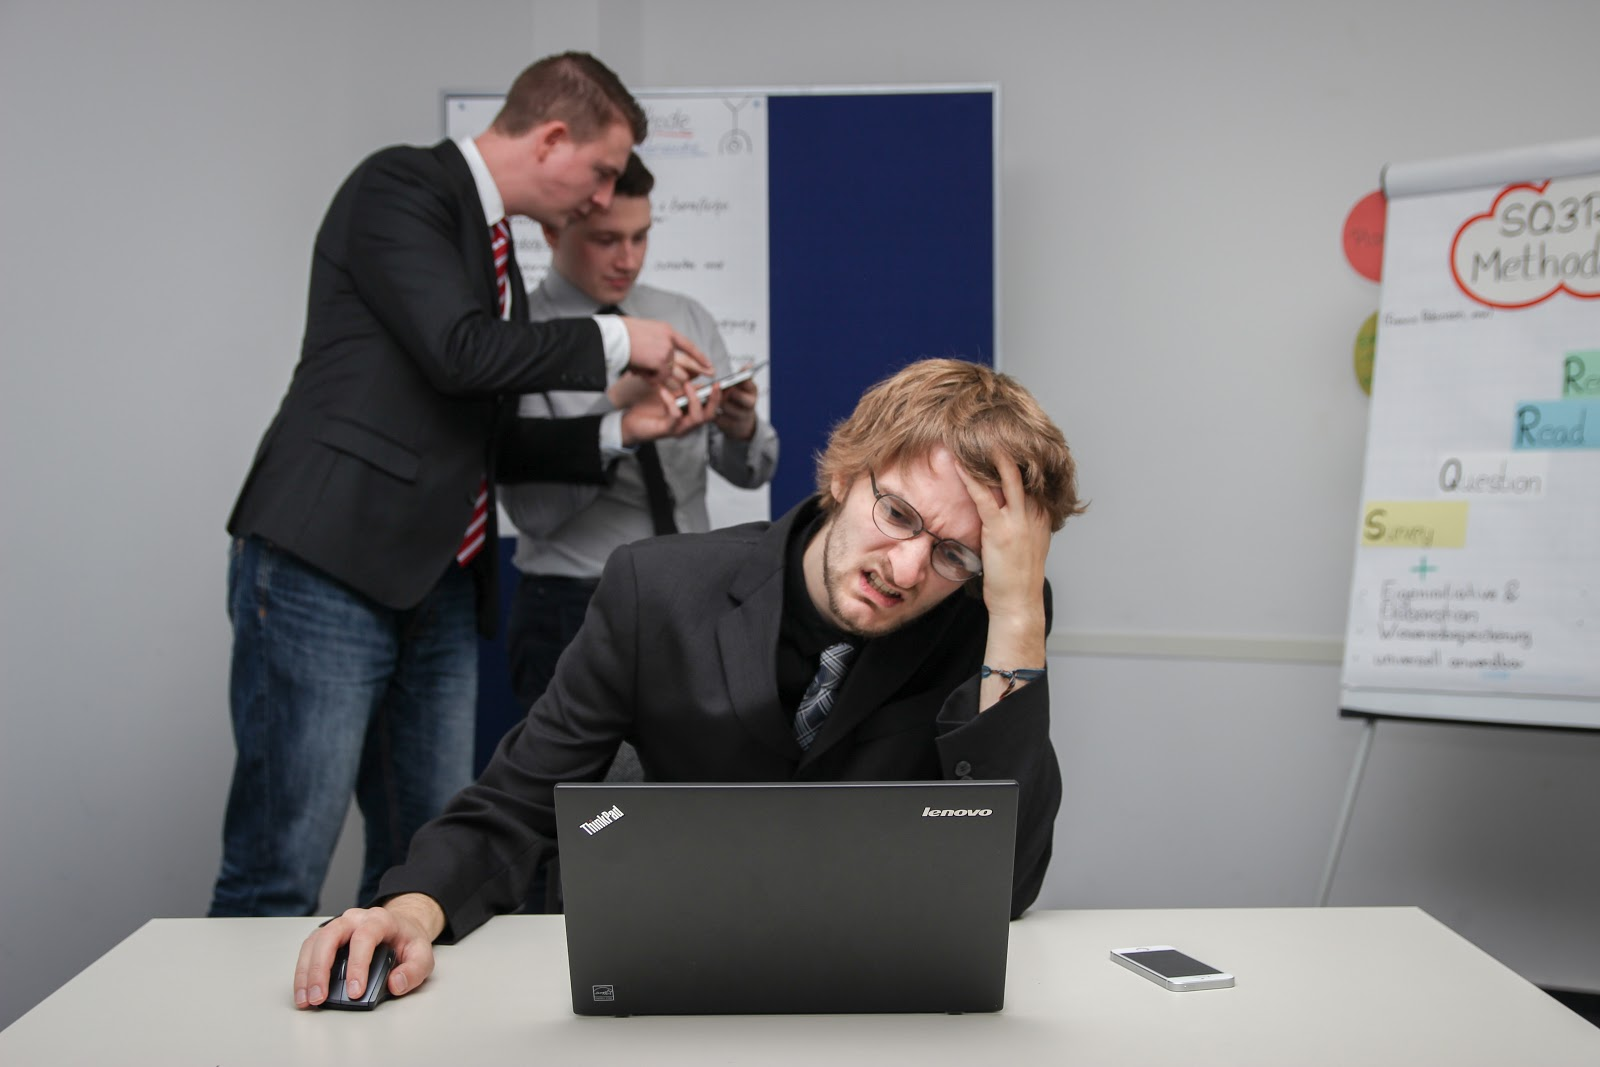 employee stressed in front of laptop, colleagues in background